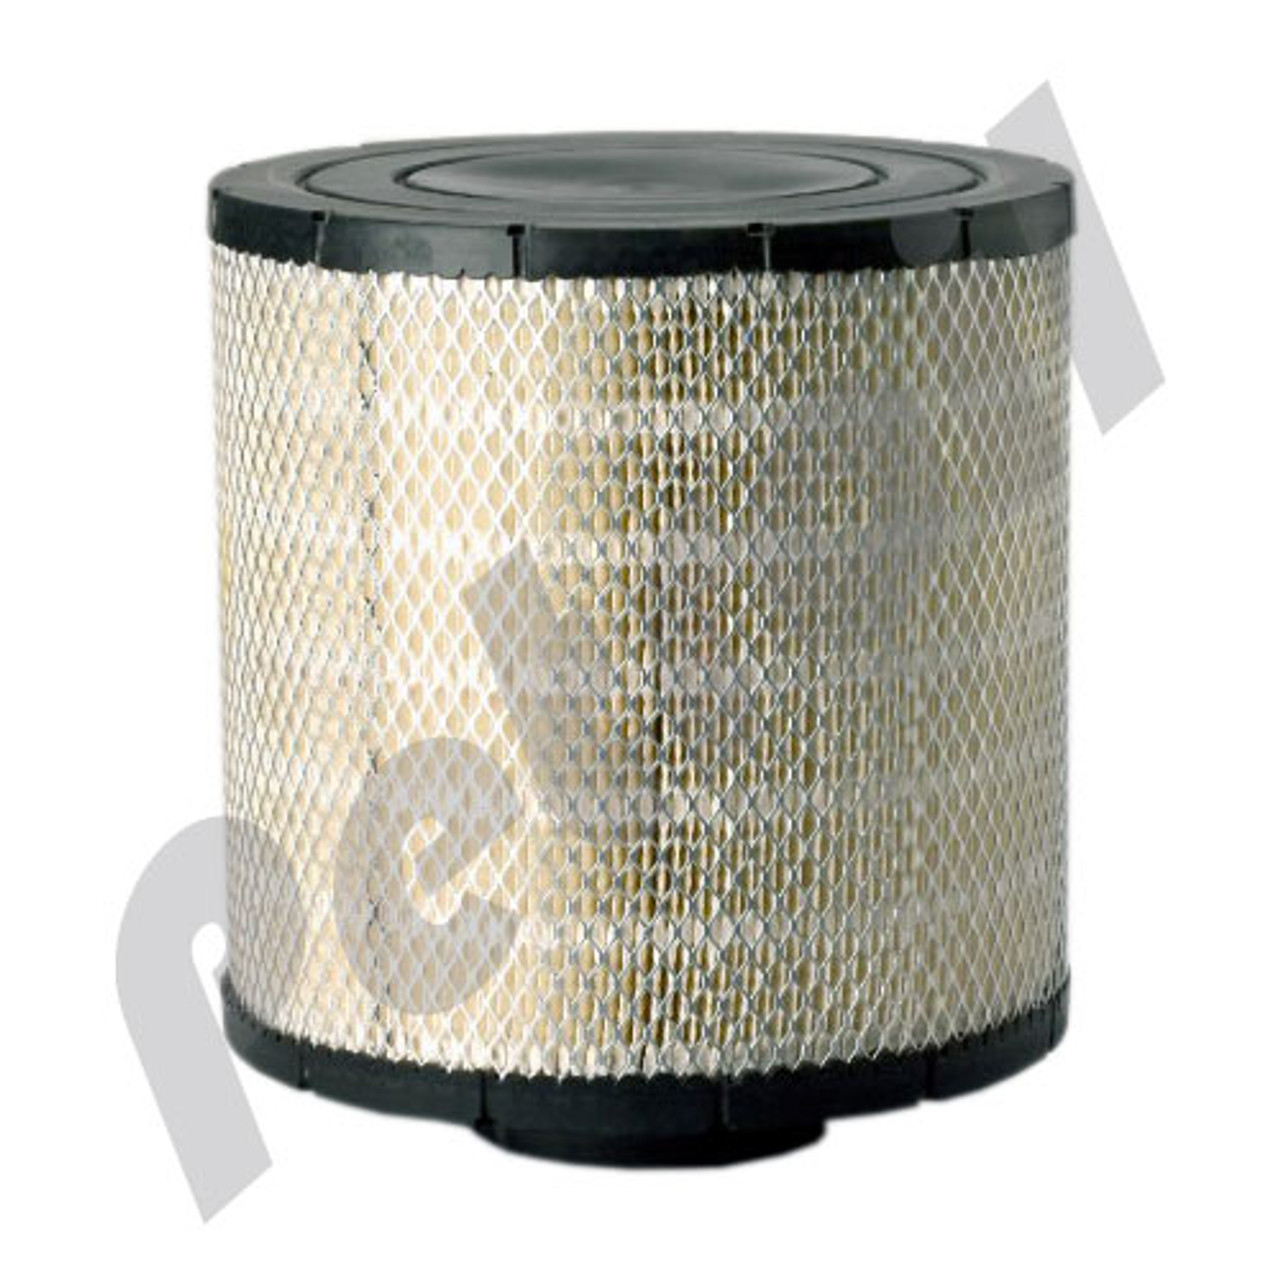 B105020 Donaldson Air Filter Primary DuraLite